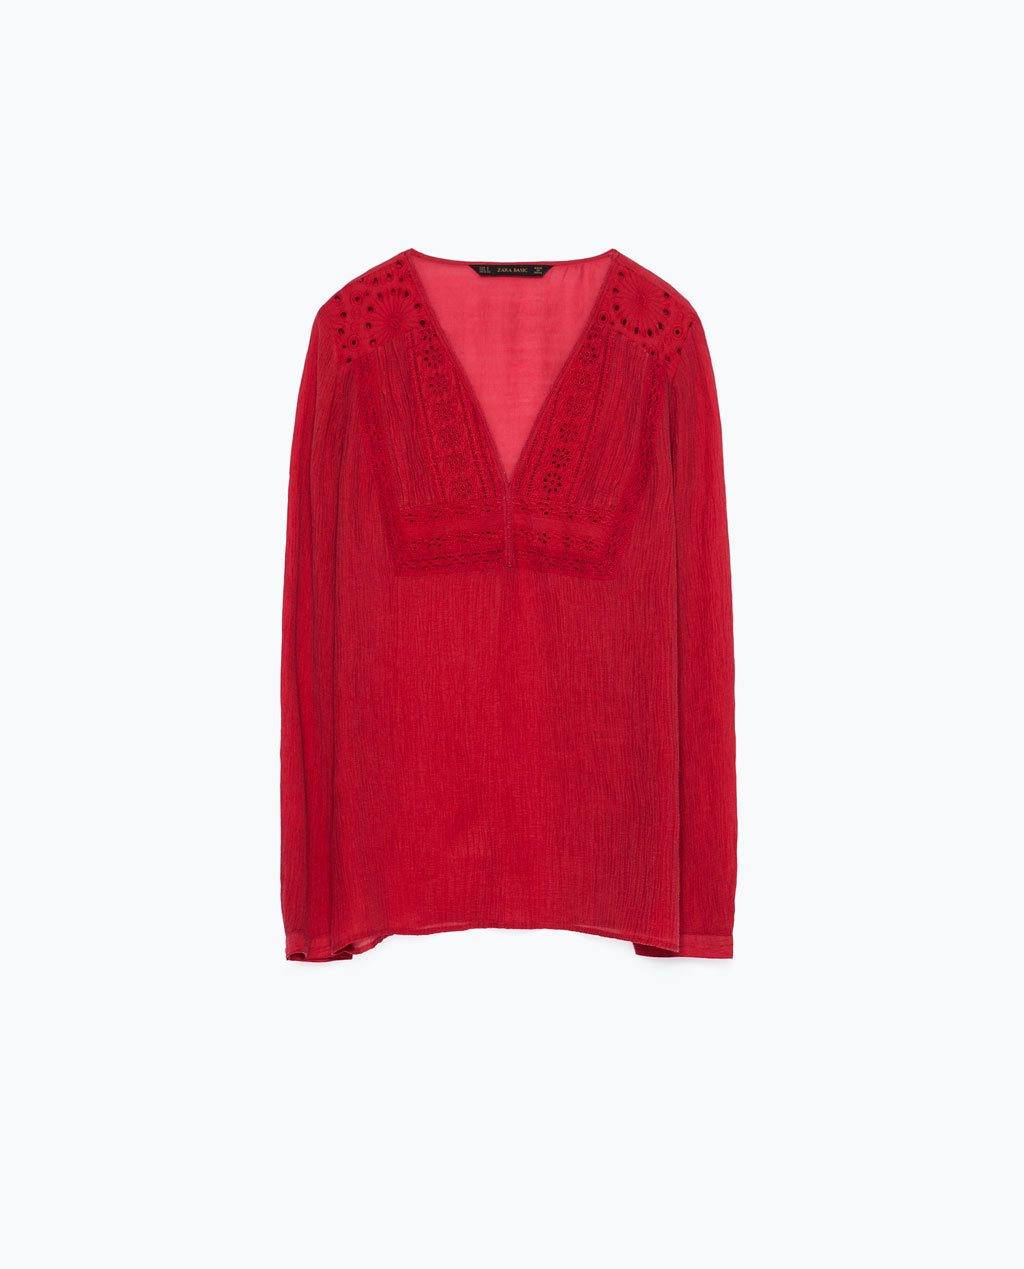 Cheesecloth Shirt With Embroidered Bib Front - neckline: v-neck; pattern: plain; style: blouse; bust detail: subtle bust detail; predominant colour: true red; occasions: casual; length: standard; fibres: viscose/rayon - 100%; fit: loose; sleeve length: long sleeve; sleeve style: standard; texture group: cotton feel fabrics; pattern type: fabric; embellishment: embroidered; season: s/s 2015; wardrobe: highlight